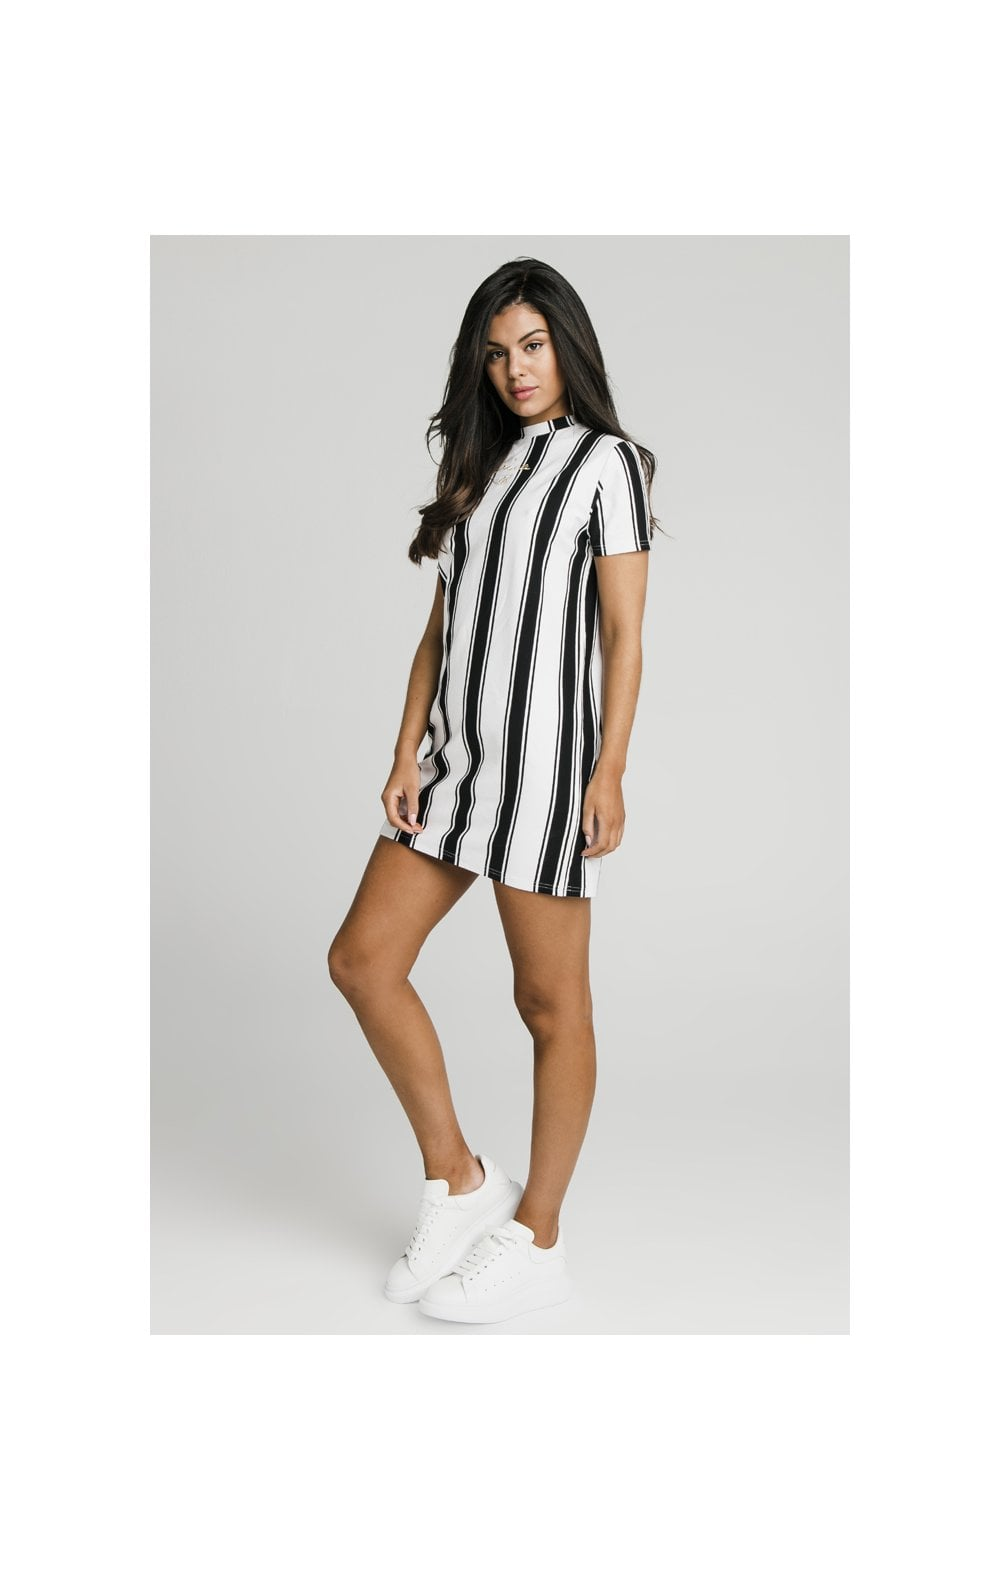 SikSilk Athena Stripe T-Shirt Dress - Black & White (2)